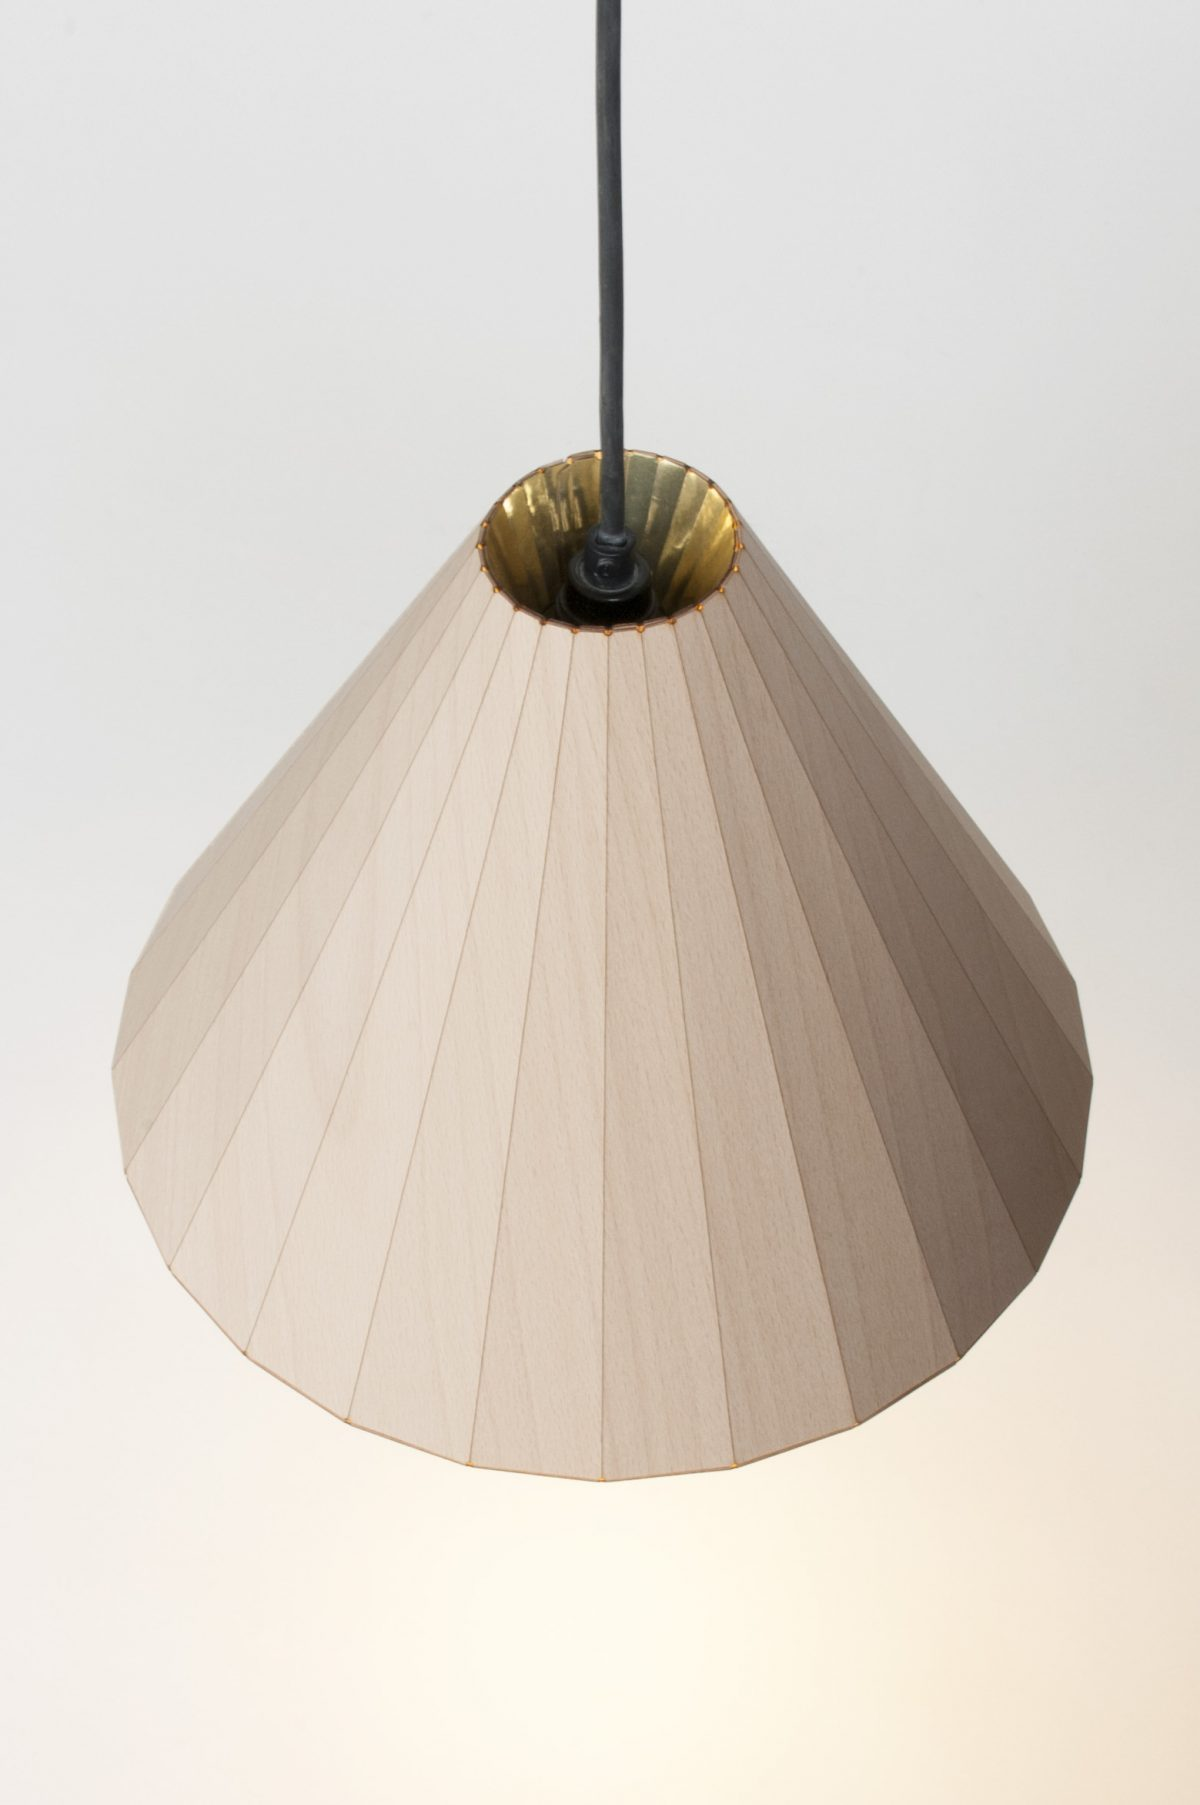 Hanglamp Wooden Light -David Derksen Design